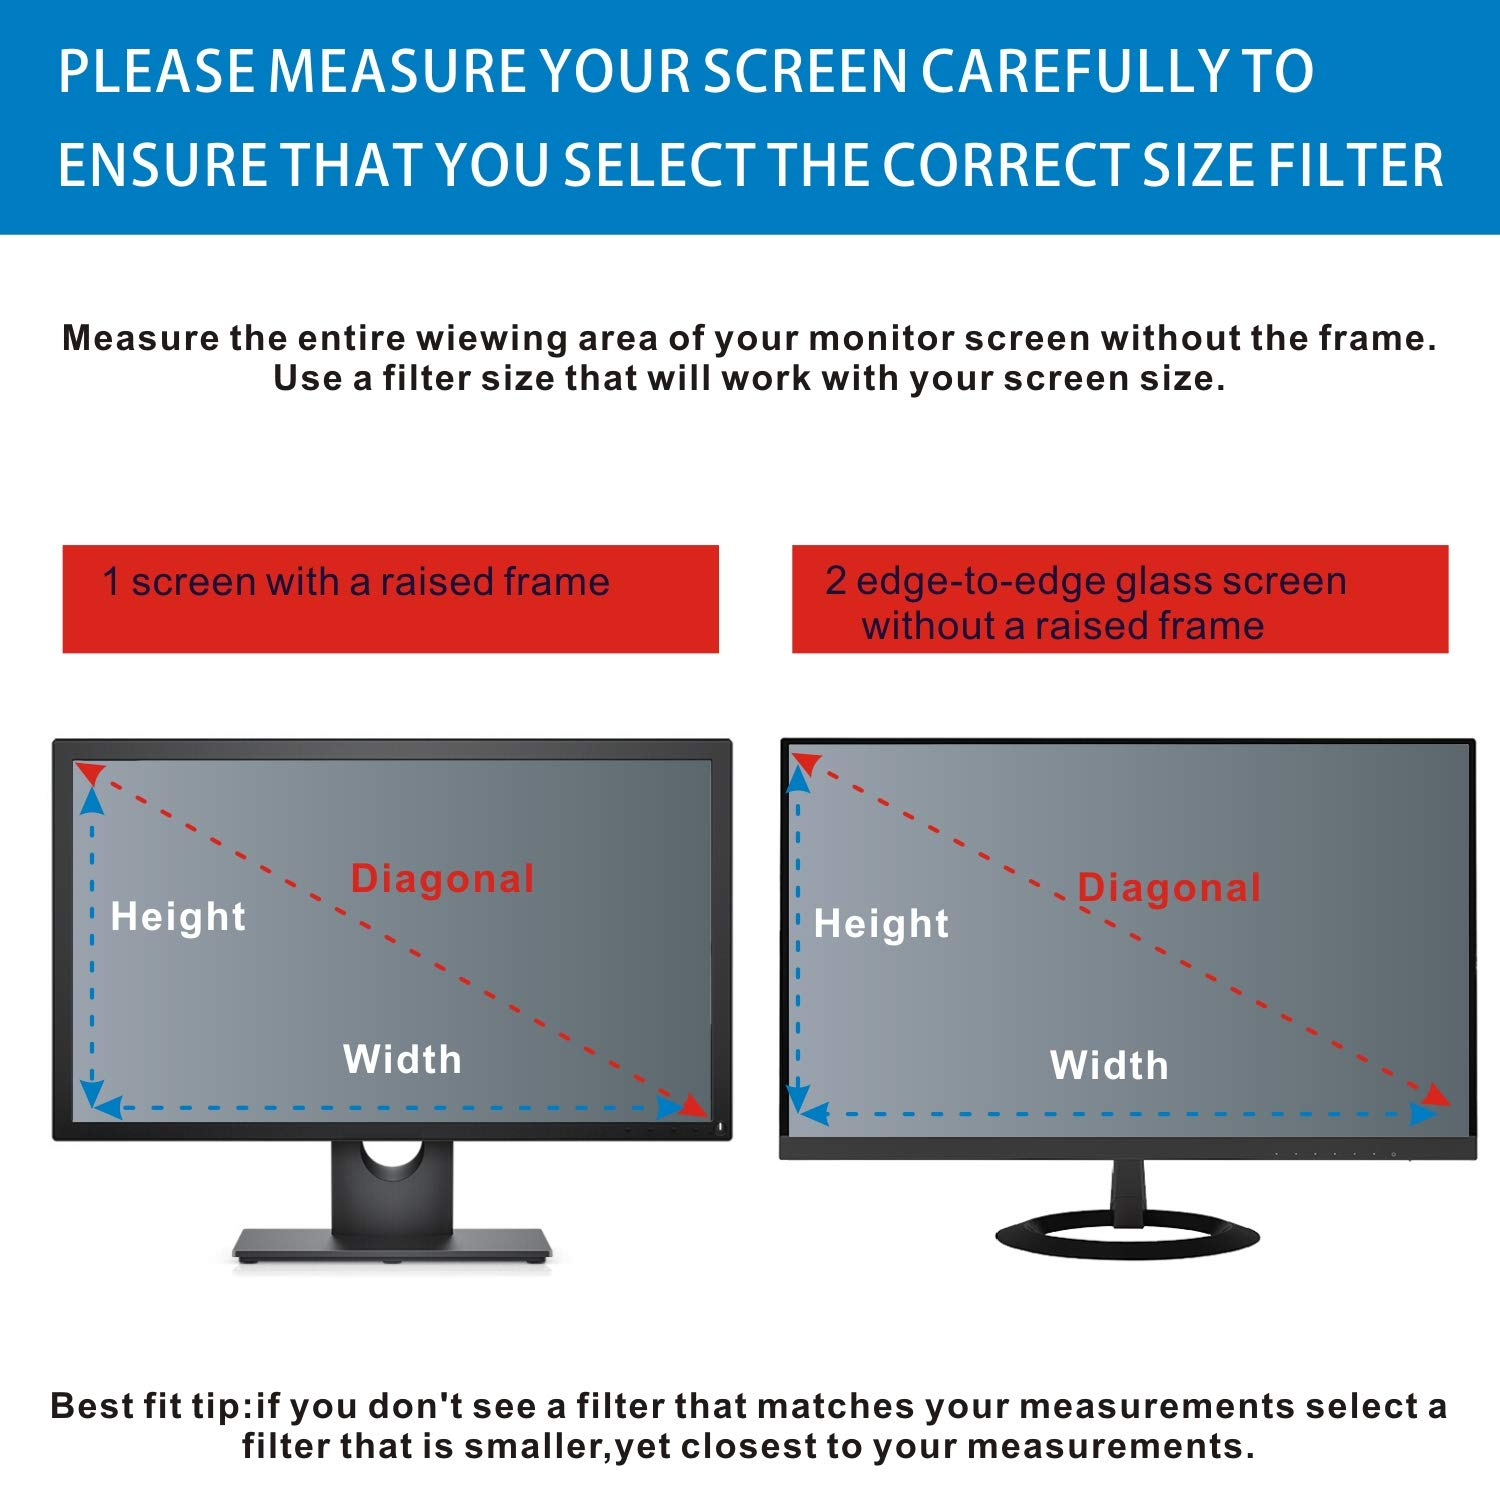 Accgonon Computer Privacy Screen Filters for 25-inch Widescreen(16:9) Monitor Privacy Screen Protector,Anti-Glare Anti-Spy Anti-Blue Scratch and UV Protection,Easy Install by ACCGONON (Image #5)